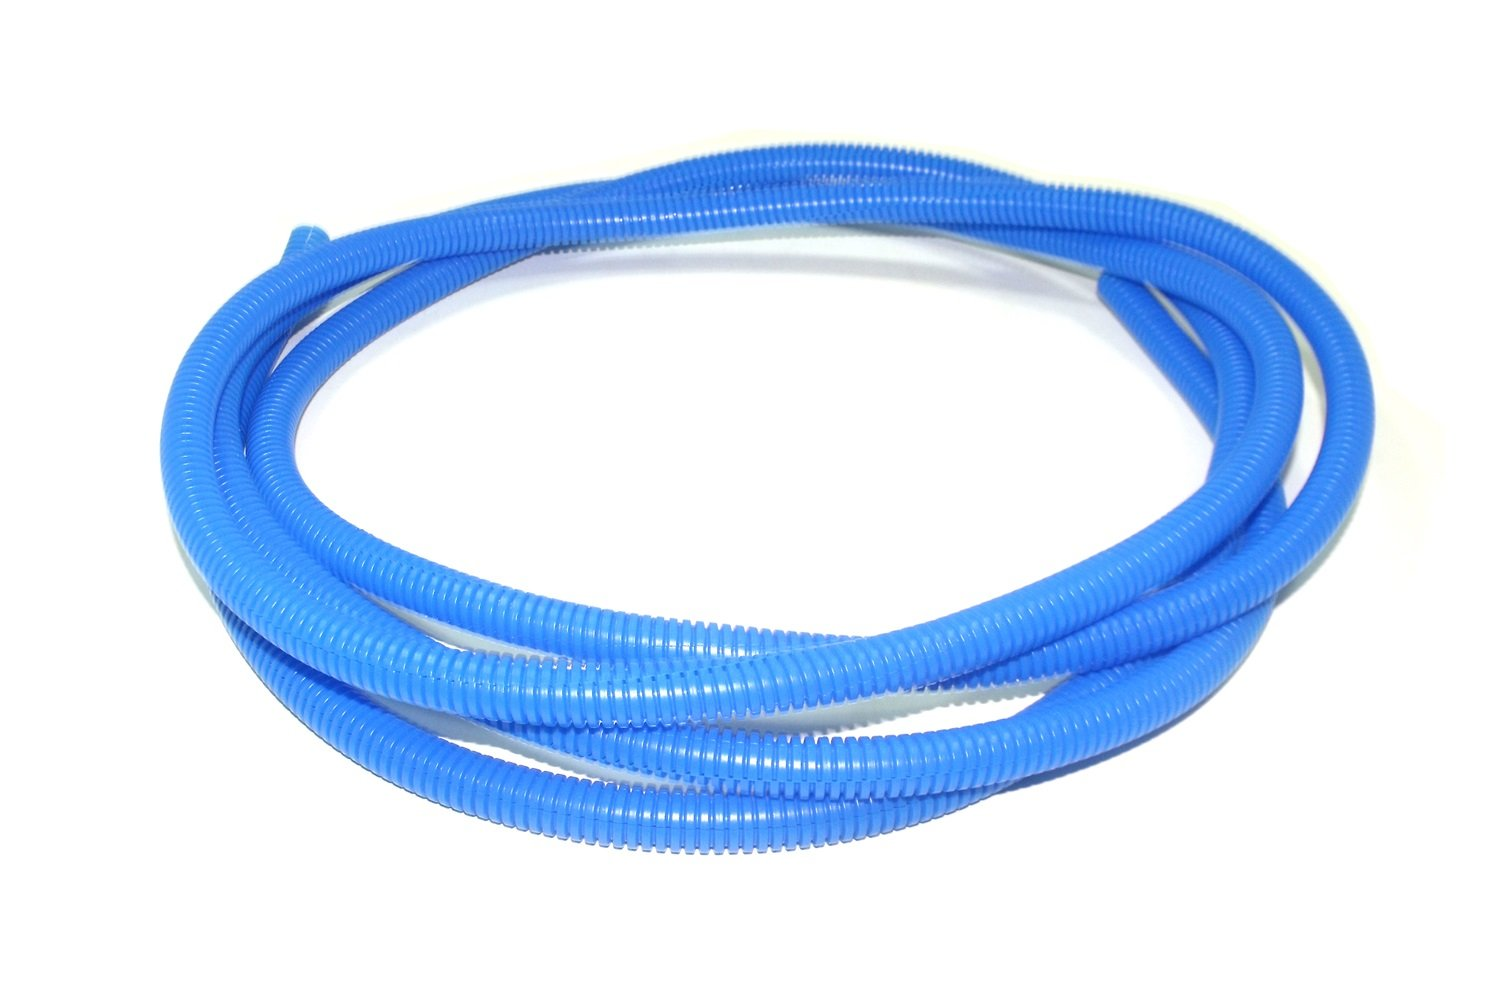 Taylor Cable 38362 Blue Convoluted Tubing